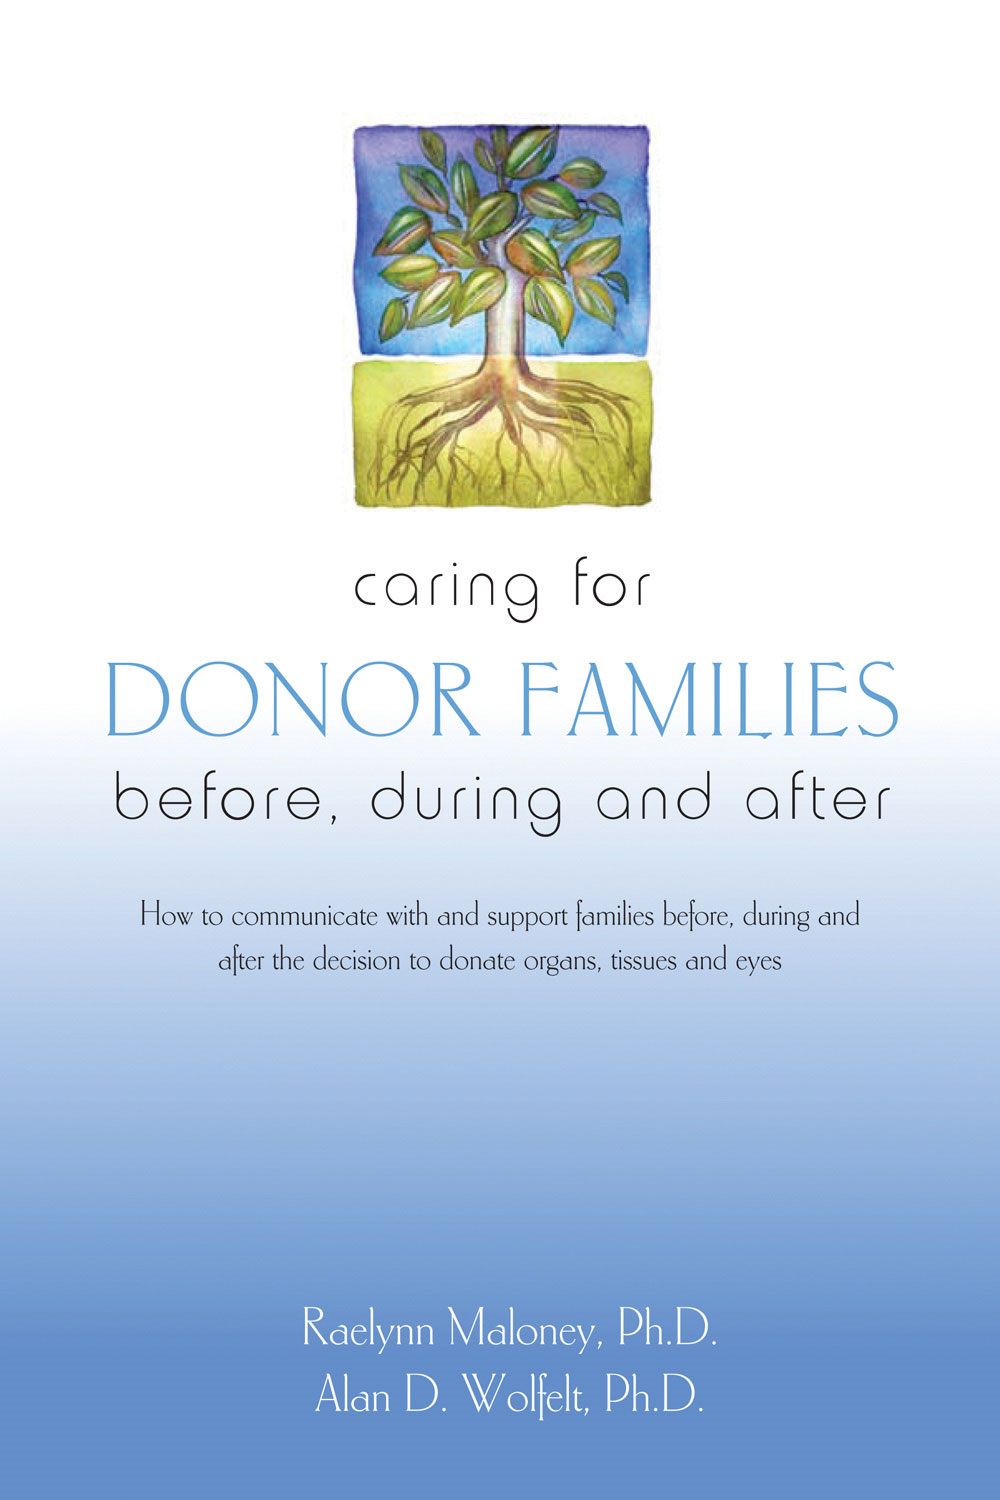 Caring for Donor Families